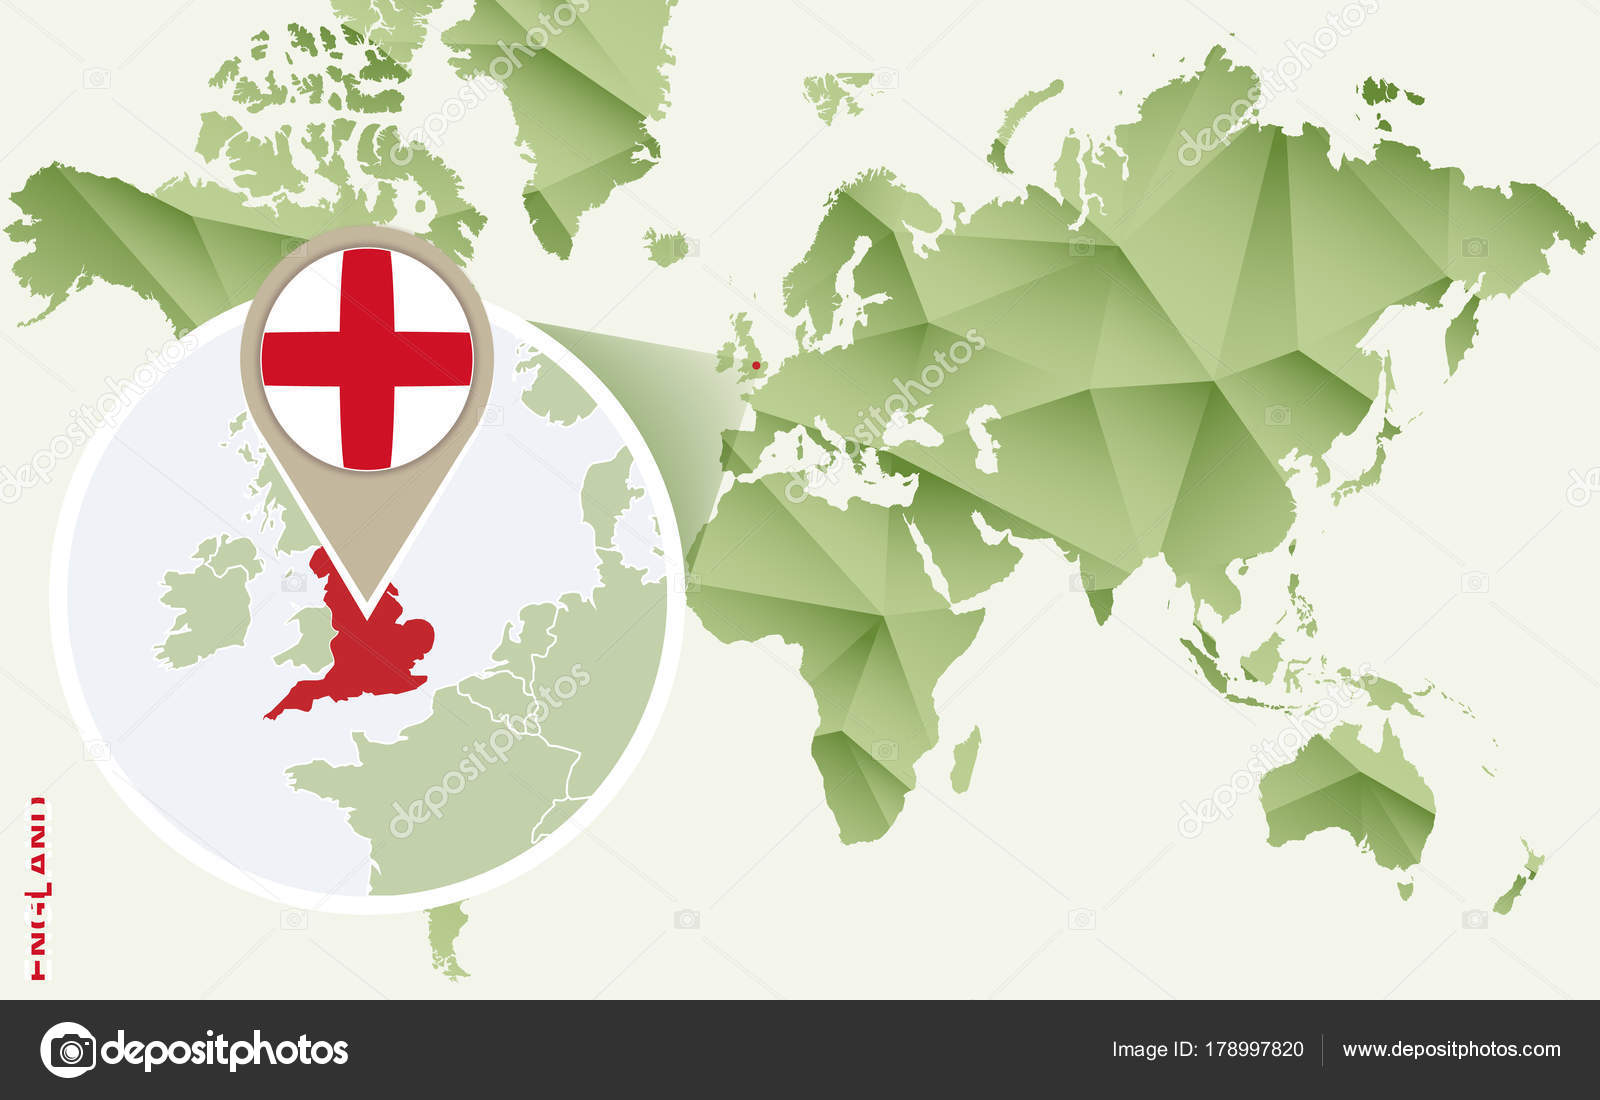 Carte Verte Angleterre.Infographic For England Detailed Map Of England With Flag